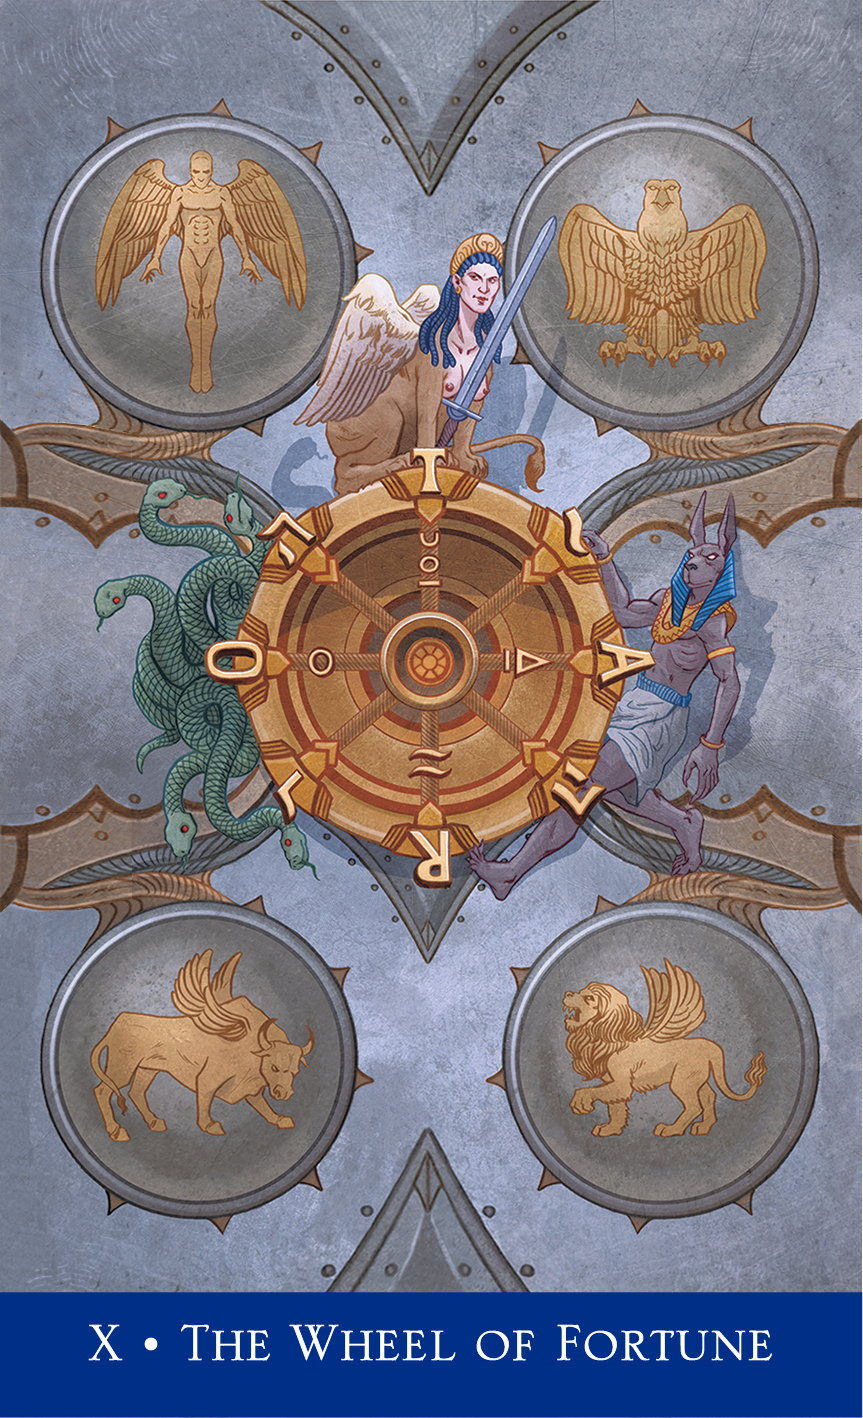 Wheel of Fortune from Llewellyn's Classic Tarot